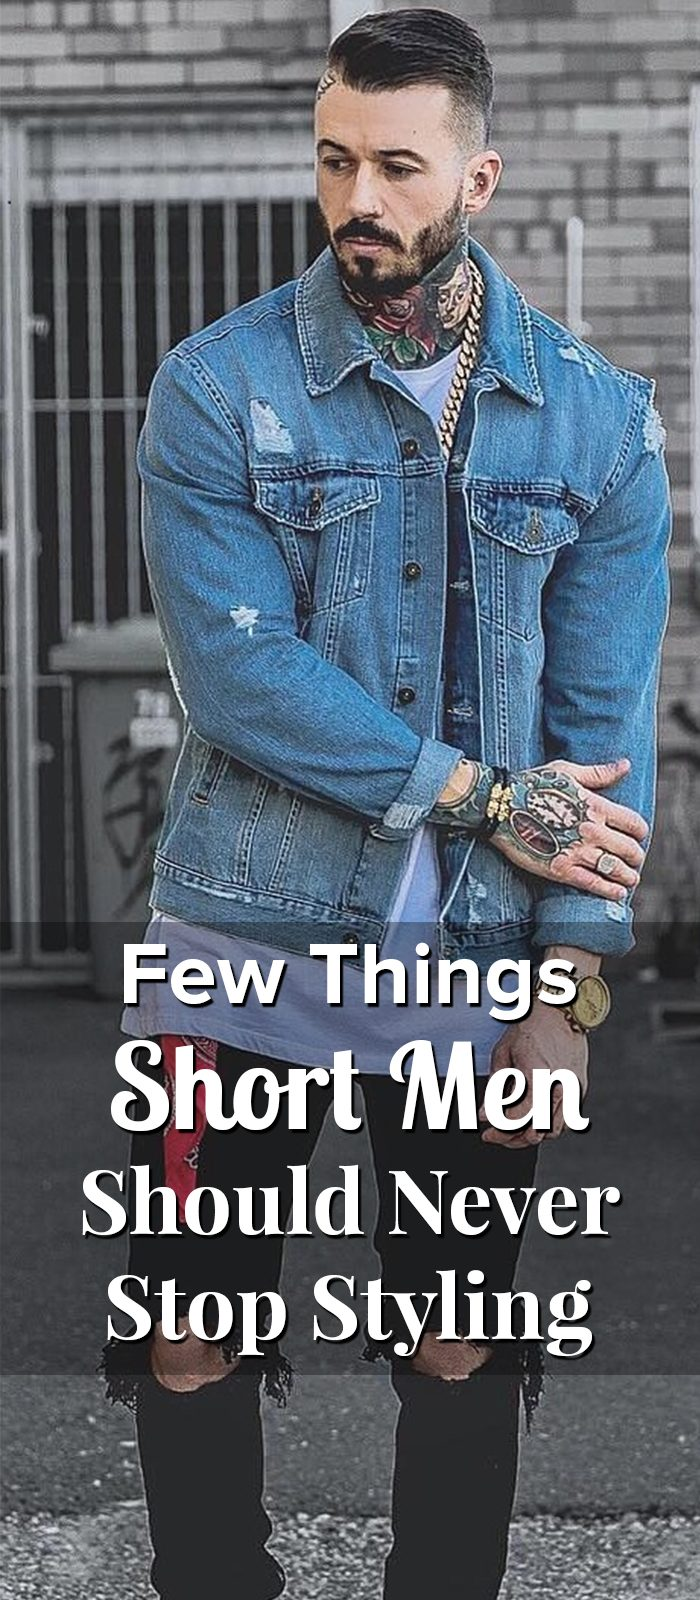 Few Things Short Men Should Never Stop Styling